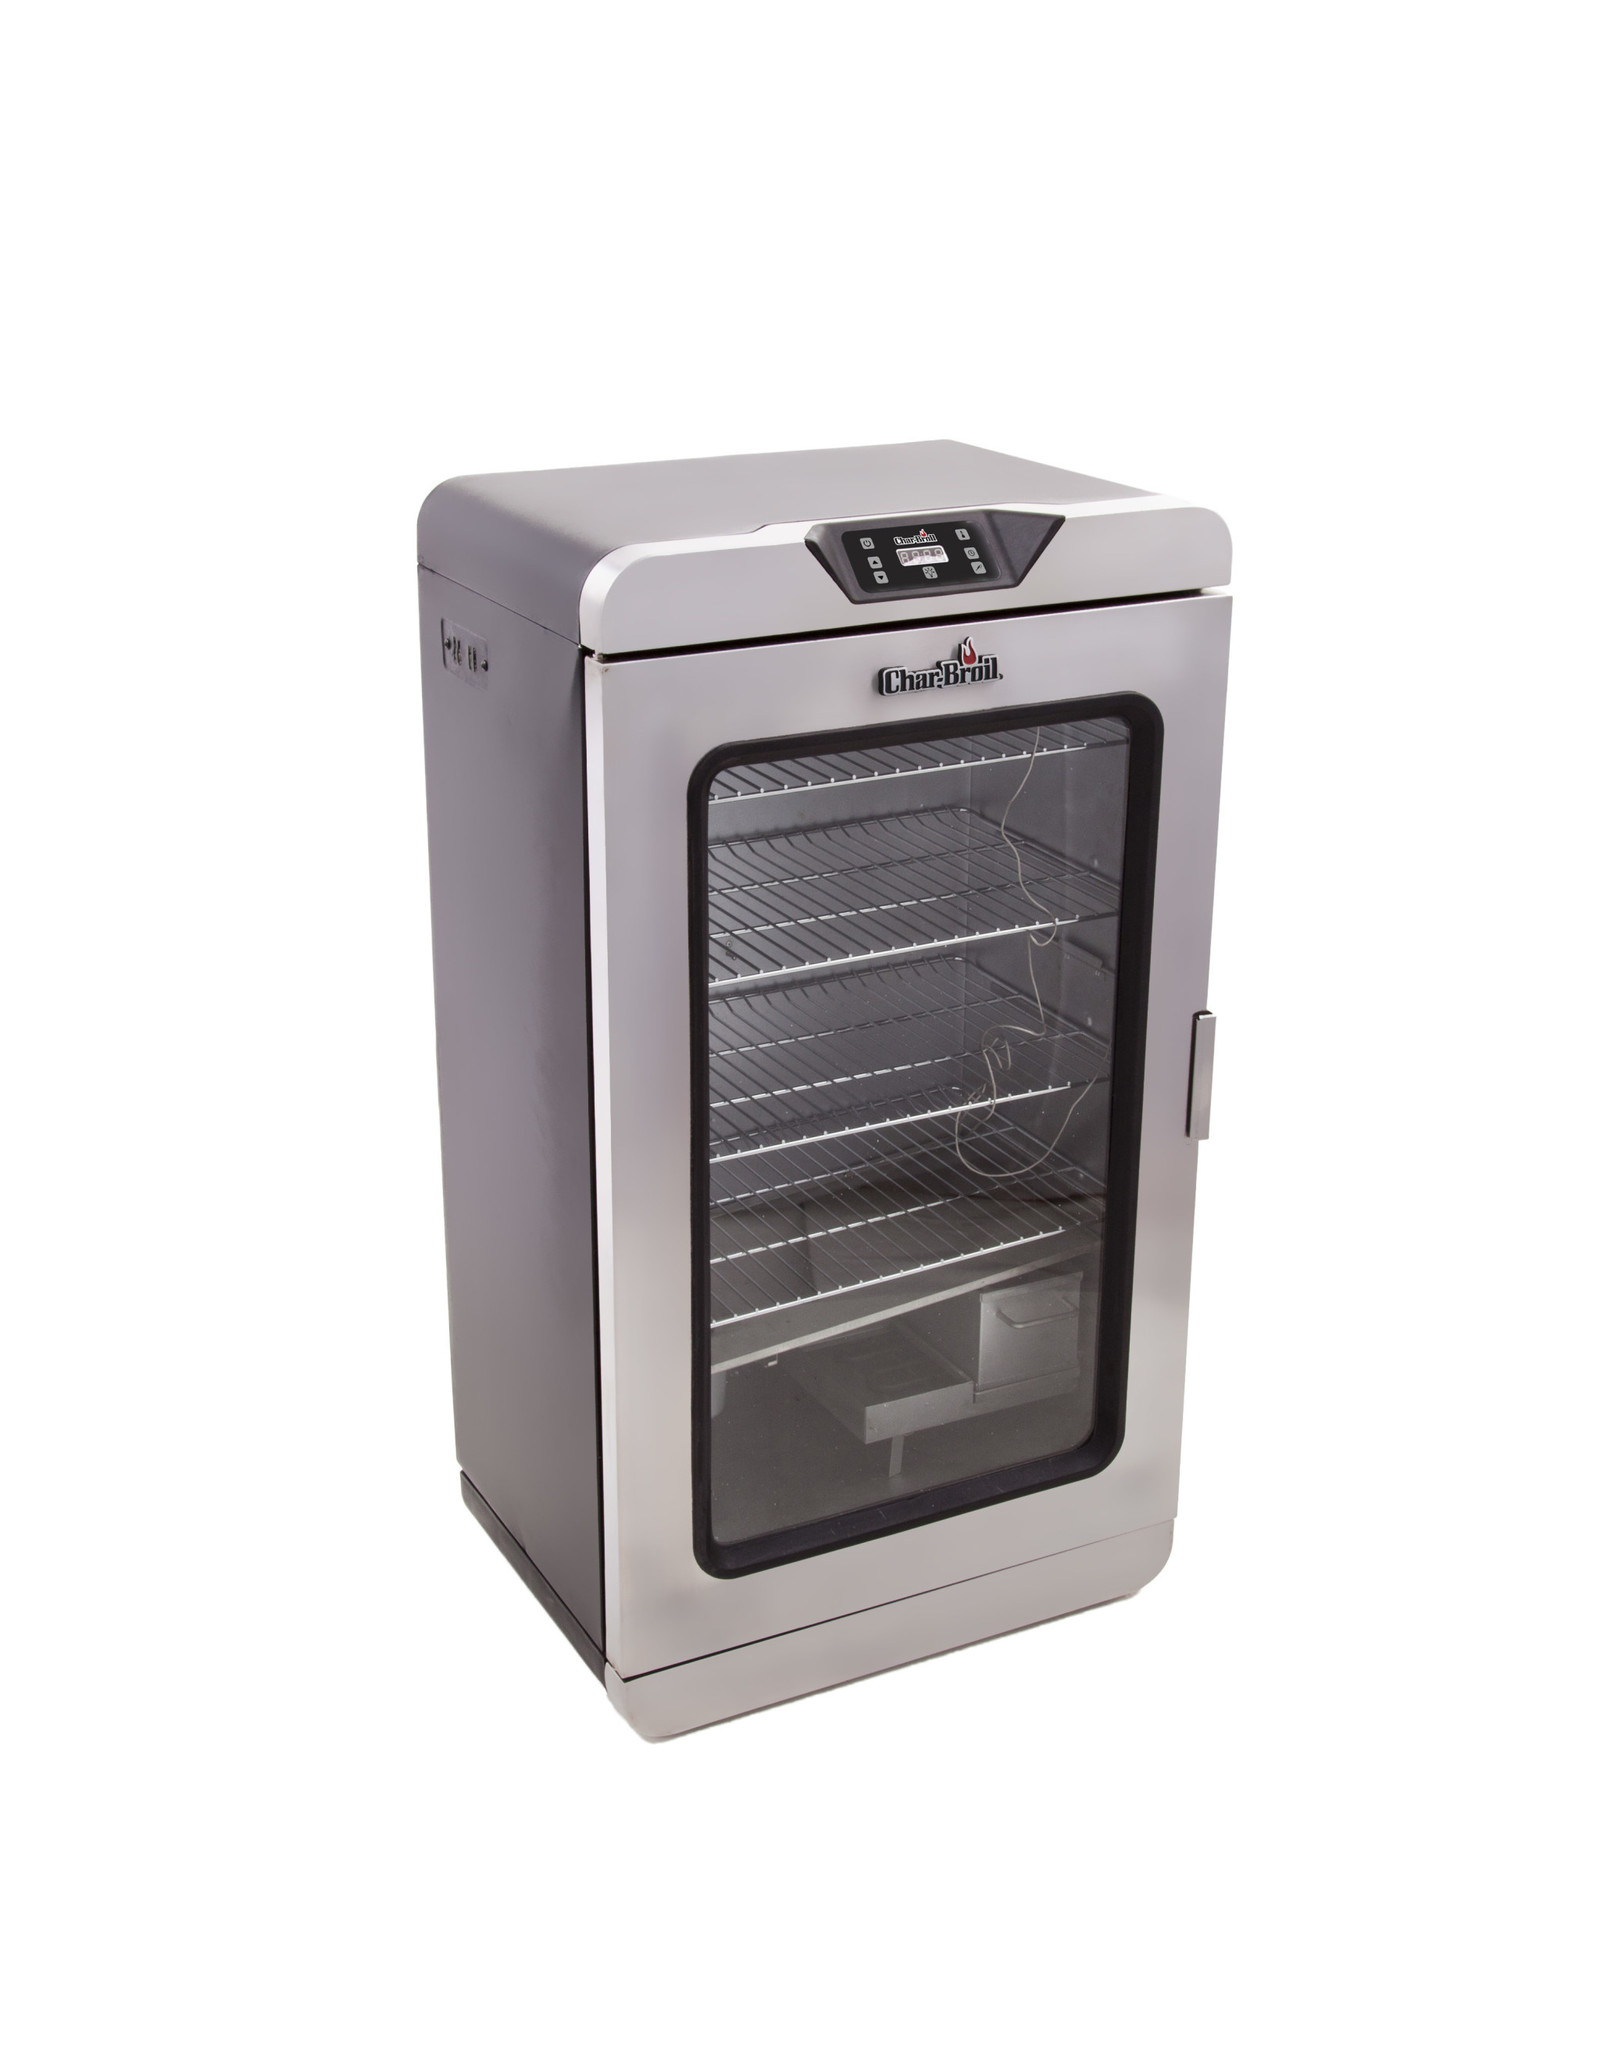 char-broil Char-Broil - 1000 Deluxe Electric Smoker - Silver